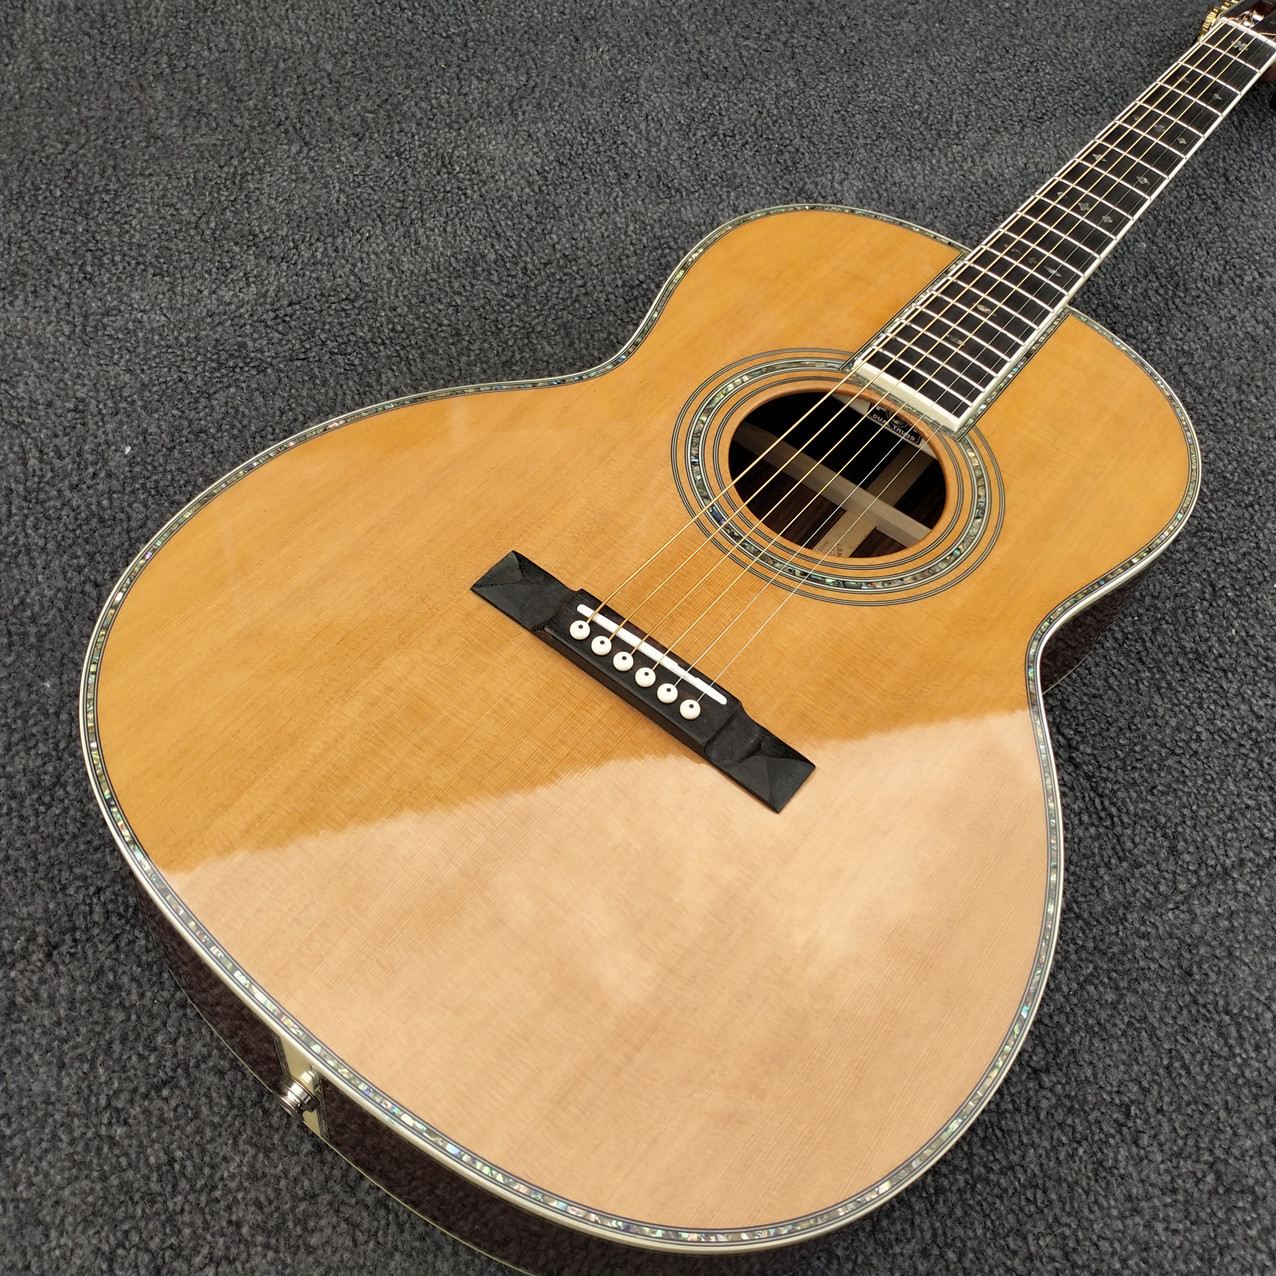 solid cedar top OOO model acoustic guitar 39 inch 42 style classic,real abalone,ebony fingerboard,free shipping